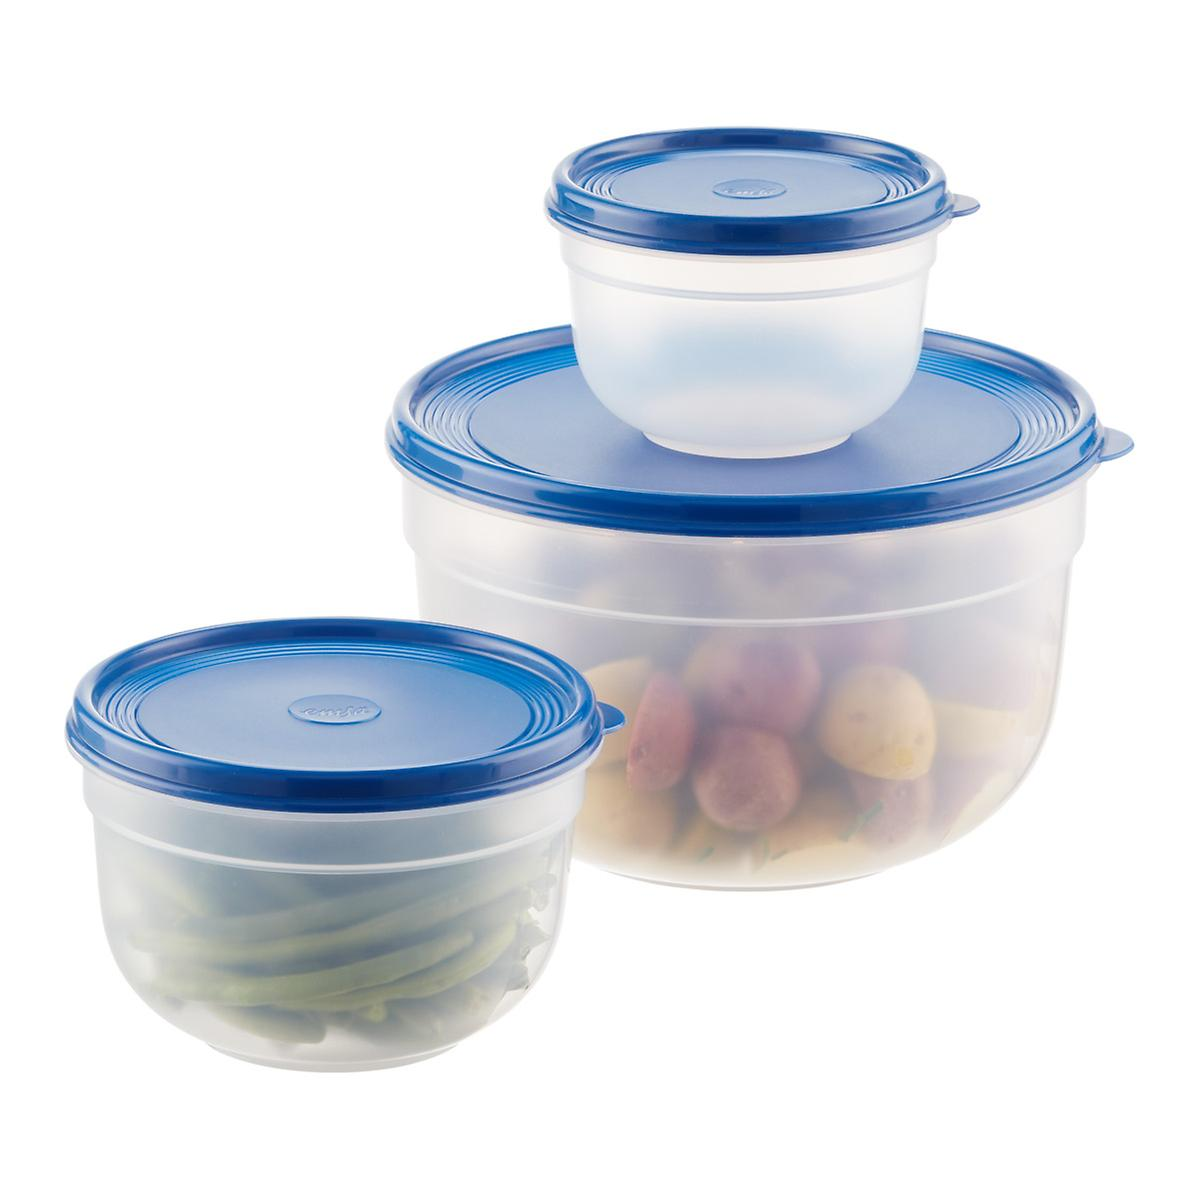 Round Plastic Food Storage Containers